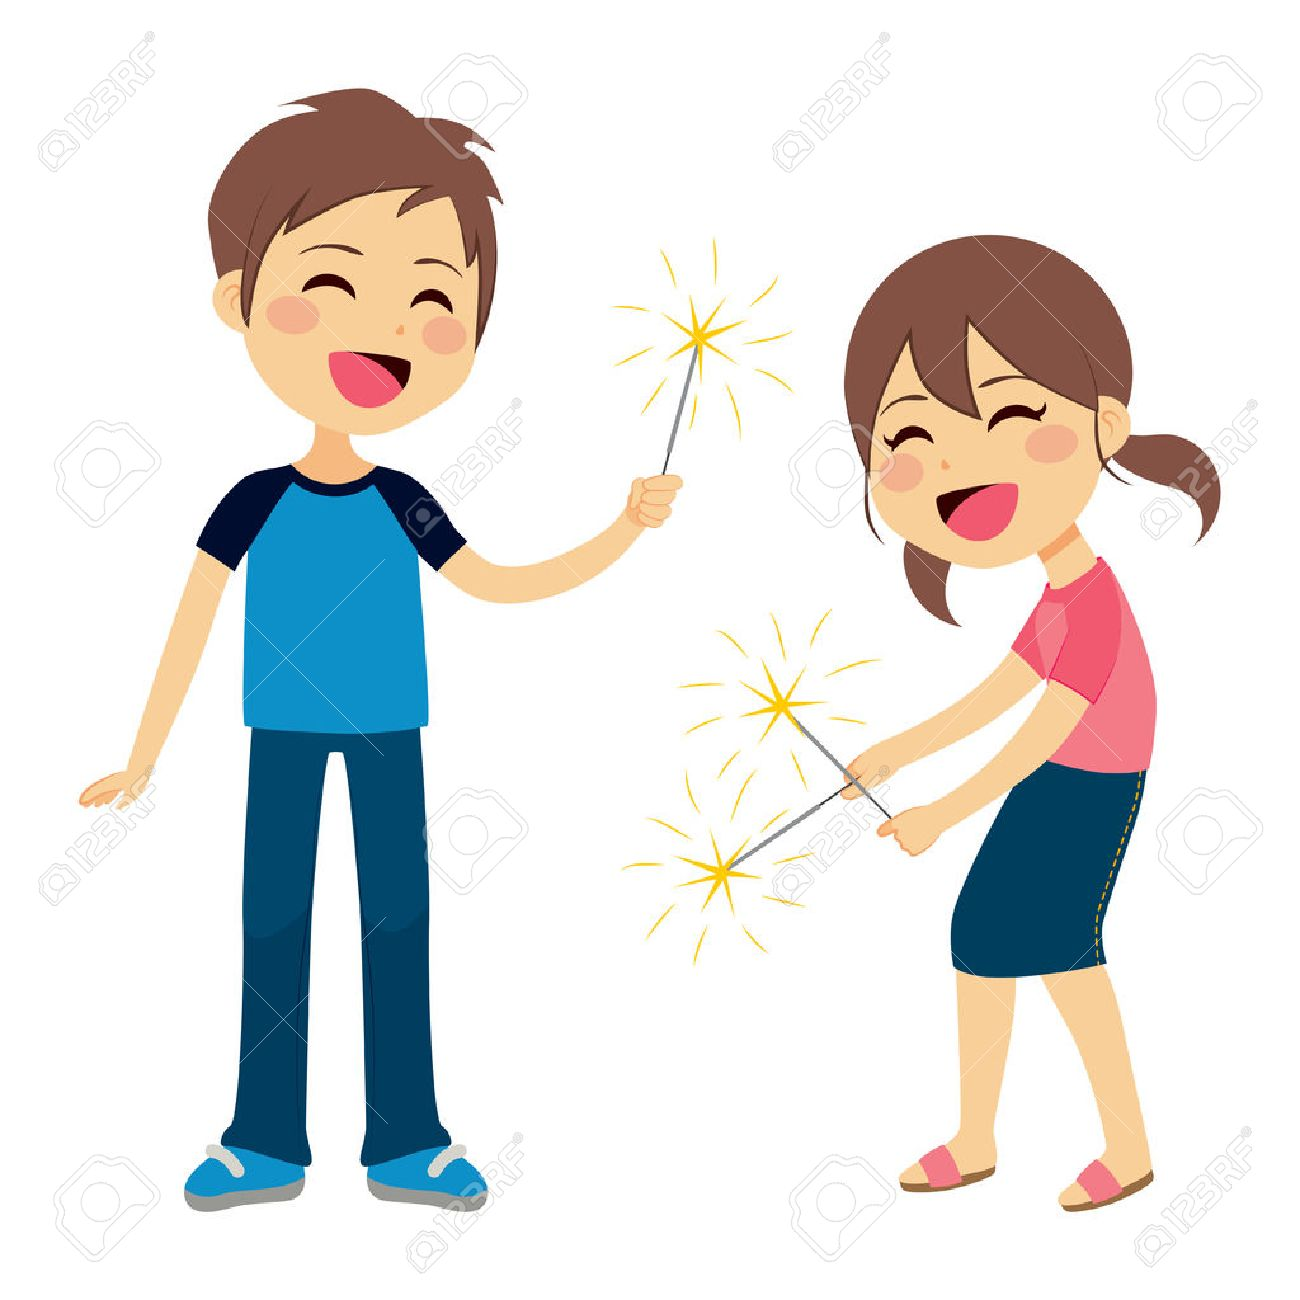 Cute children boy and girl playing with sparkler fireworks.